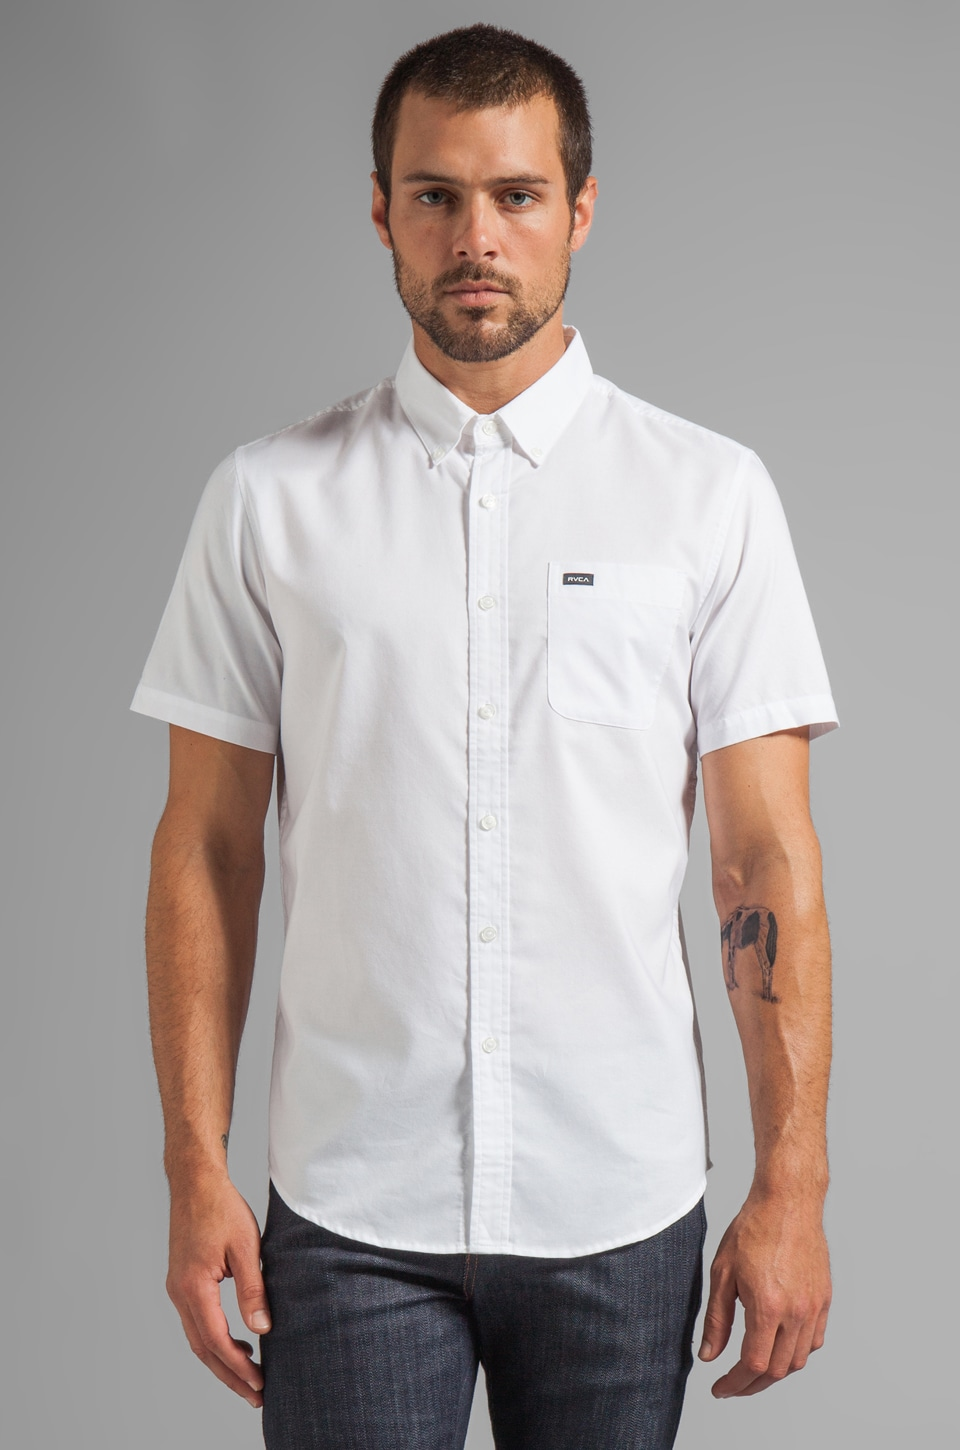 RVCA That'll Do Oxford S/S Shirt in White